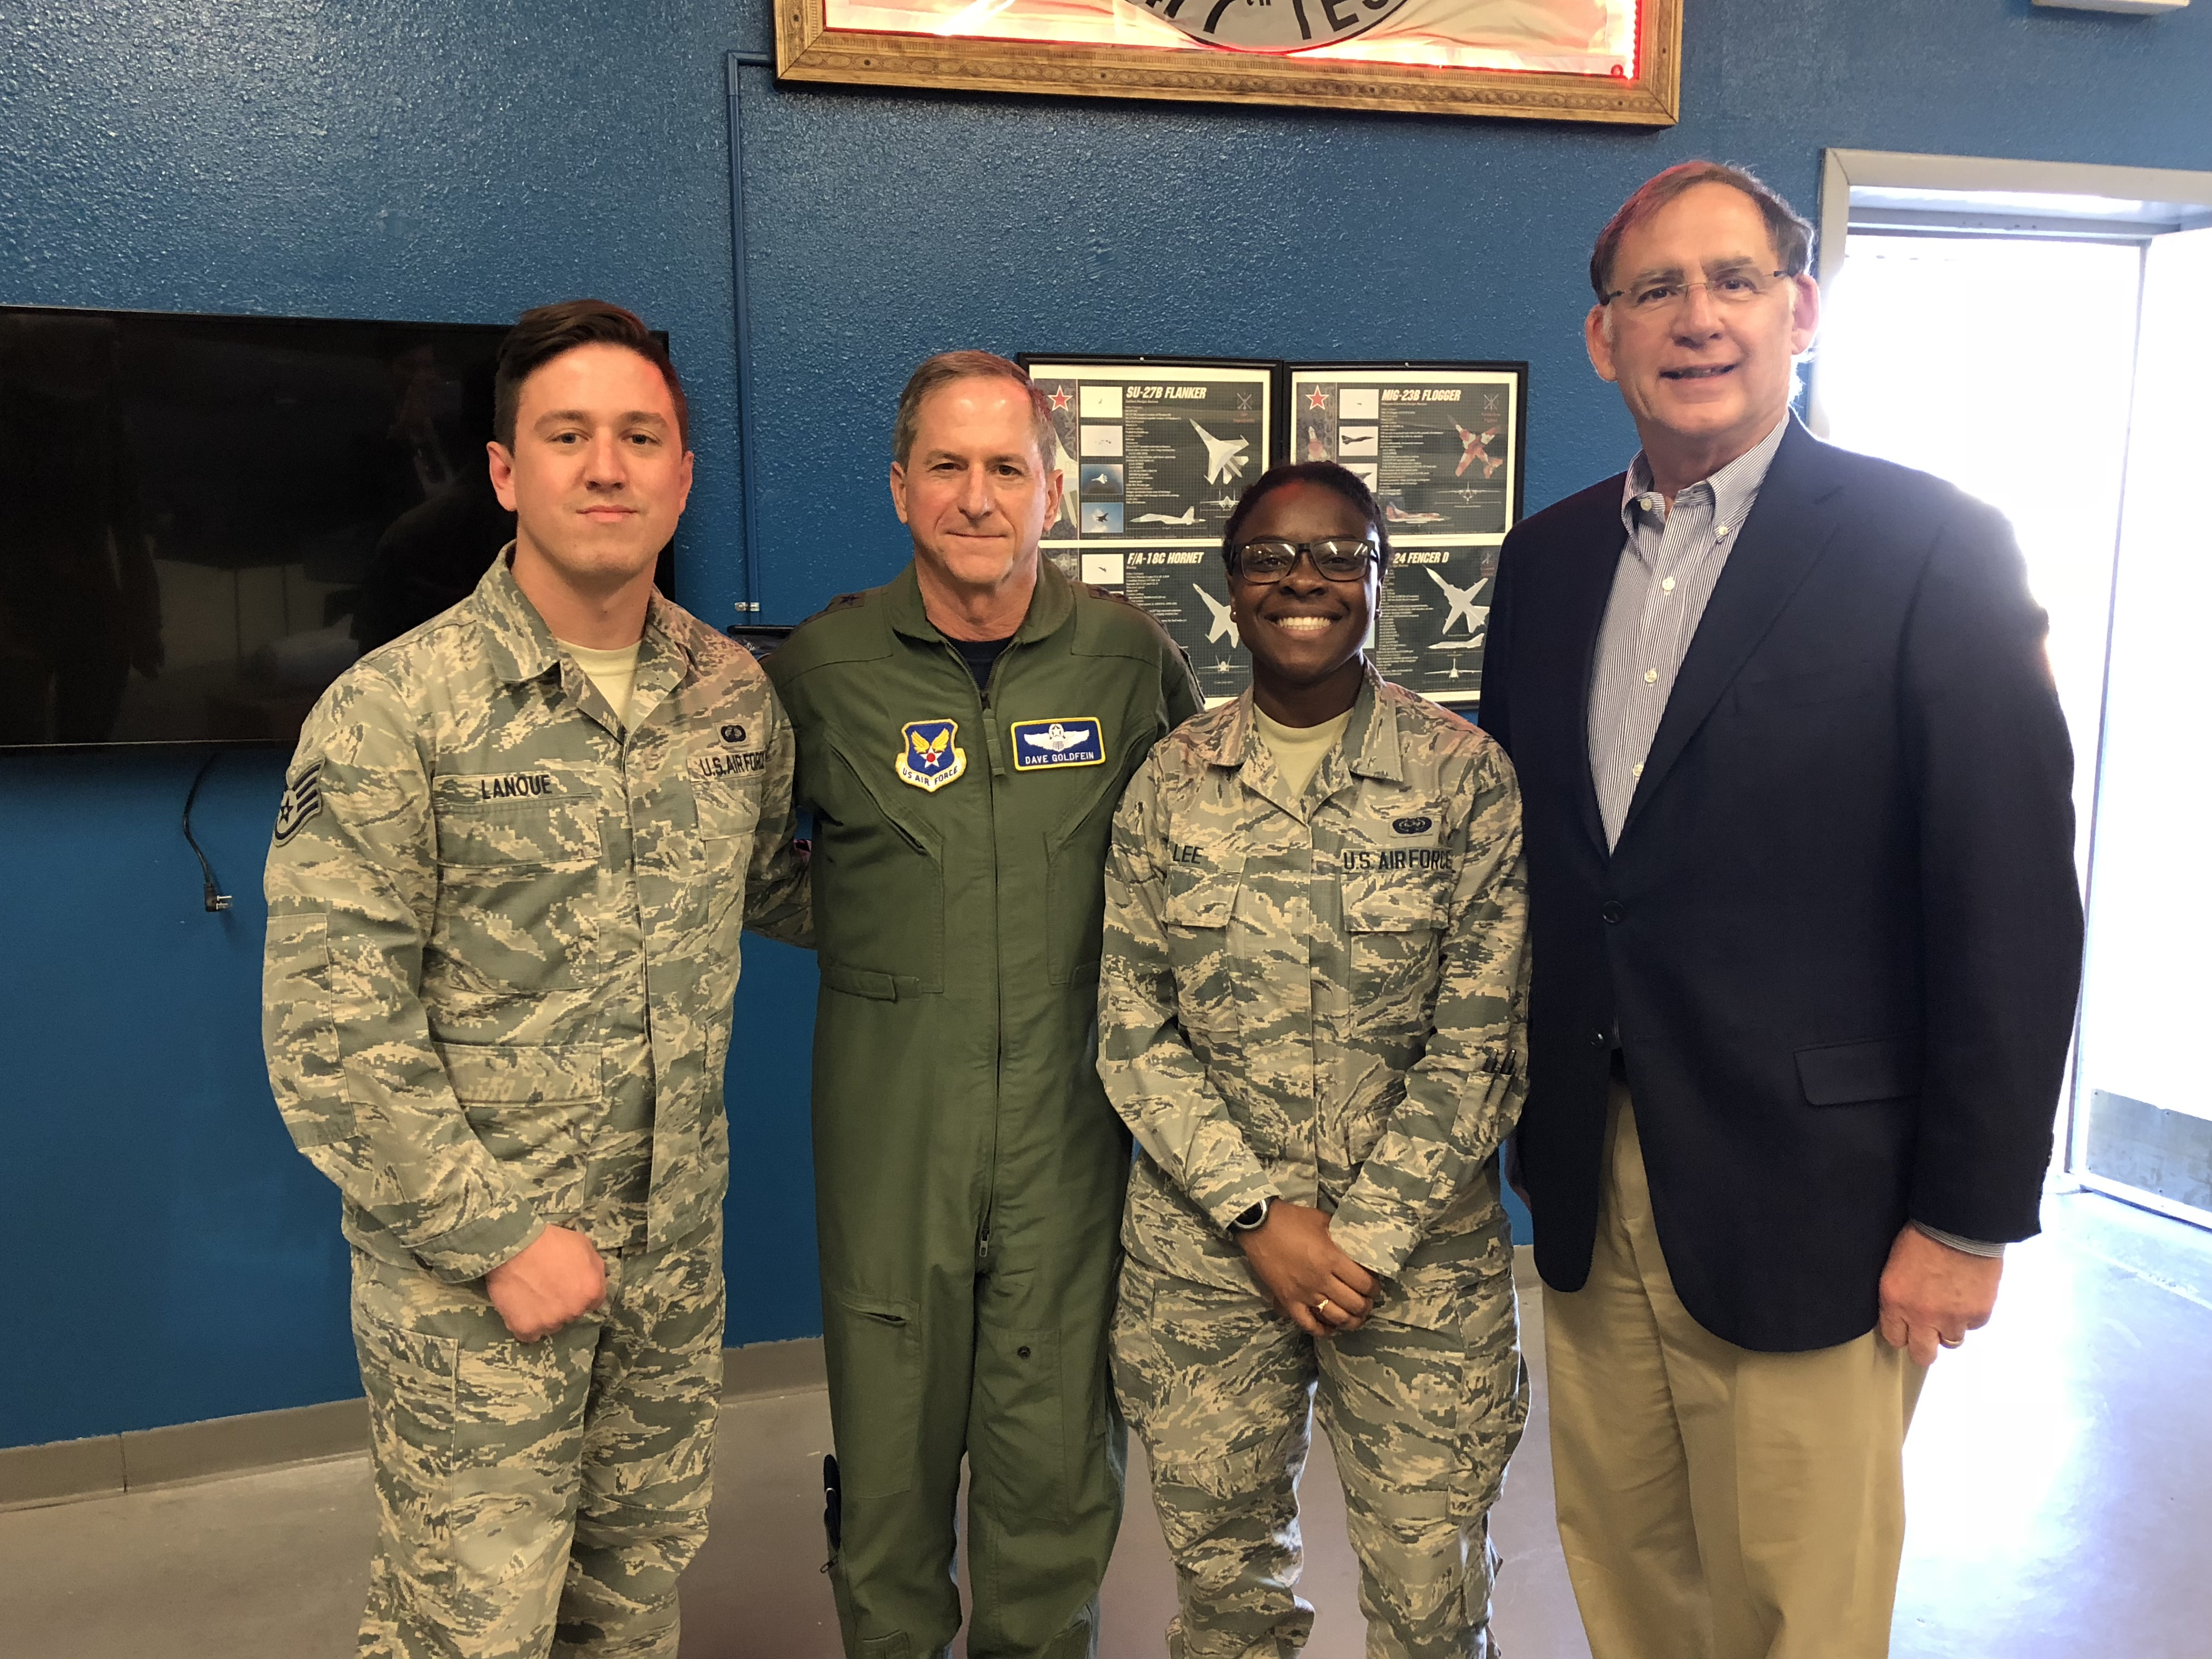 Senator Boozman and Air Force Chief of Staff Gen. David Goldfein with Arkansans stationed at Nellis Air Force Base.